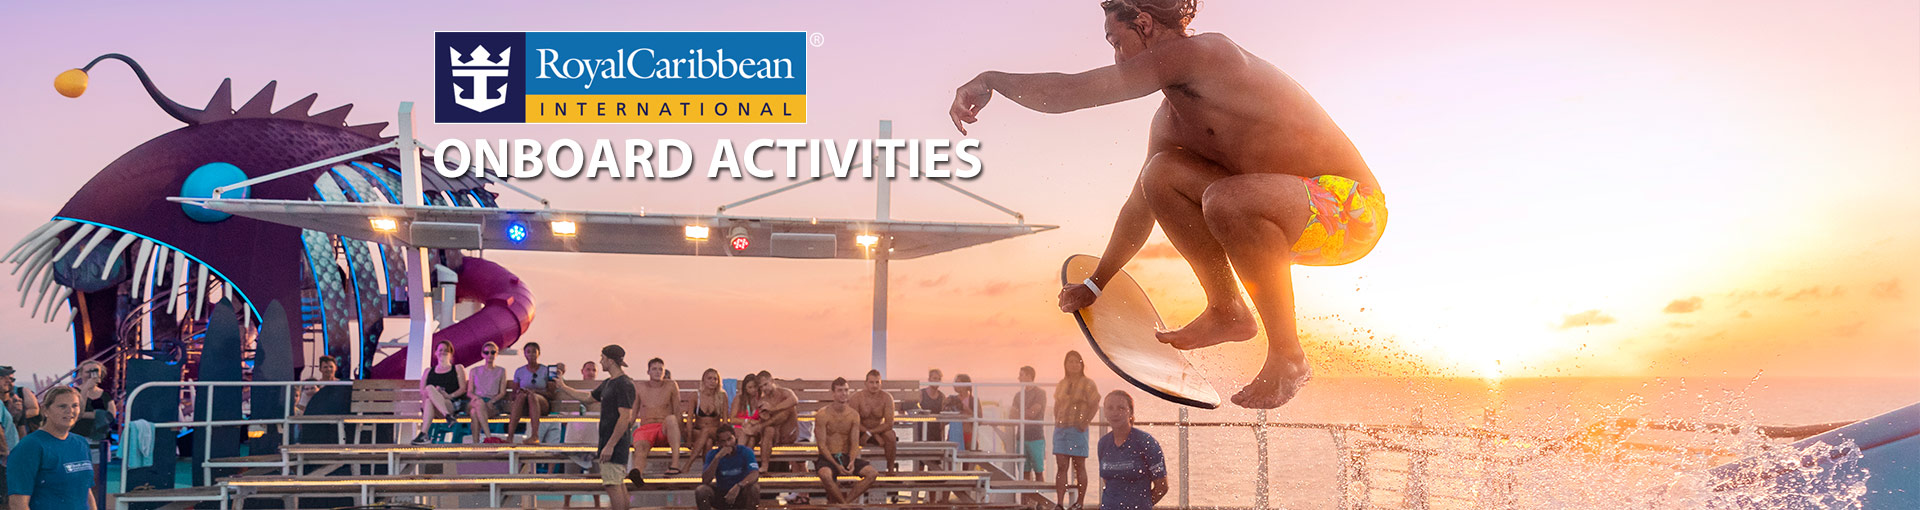 Royal Caribbean Onboard Activities